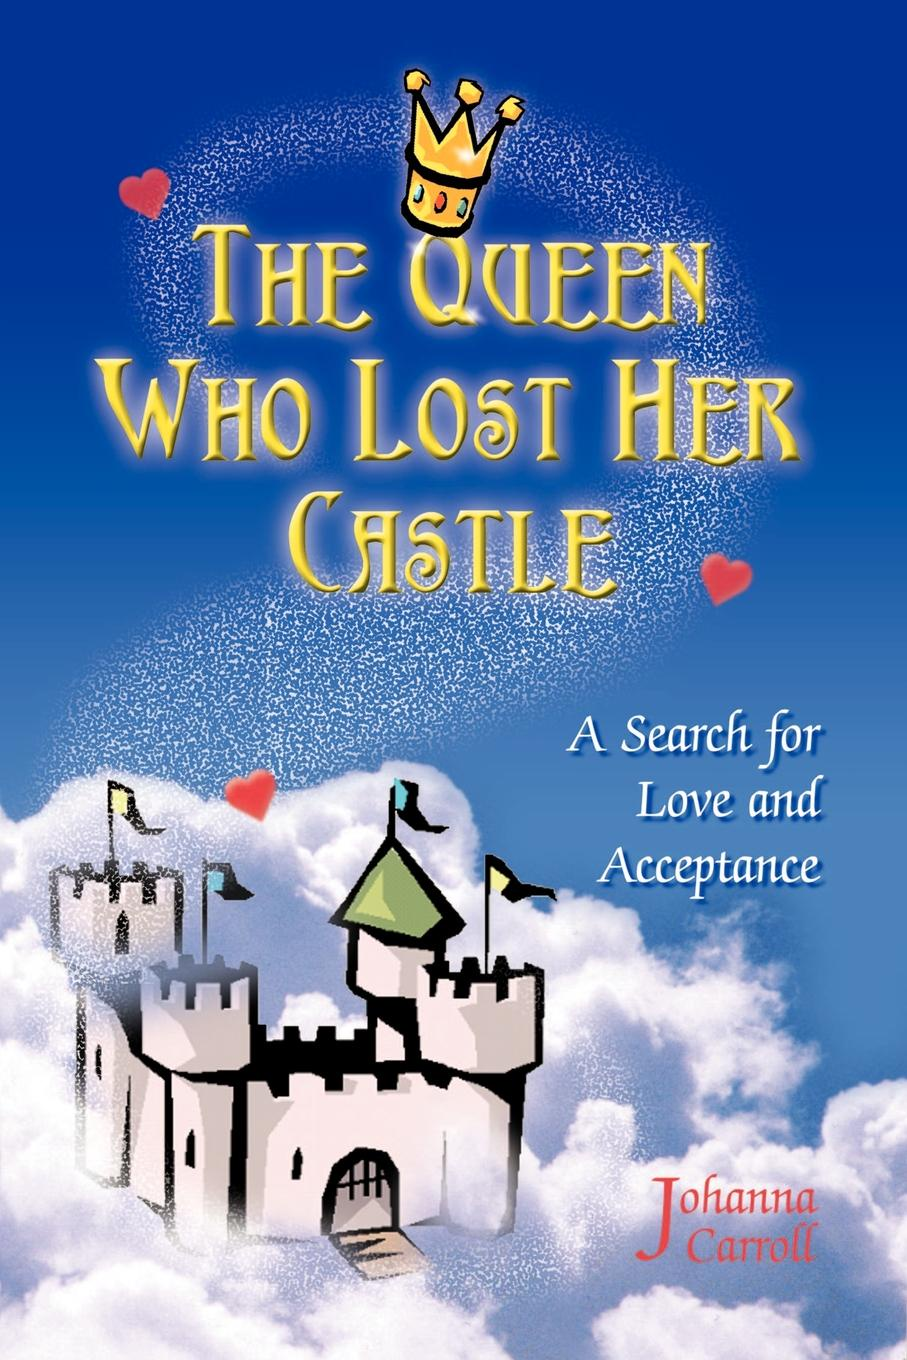 Johanna Carroll The Queen Who Lost Her Castle. A Search for Love and Acceptance/Children 8-10 the pastry queen page 8